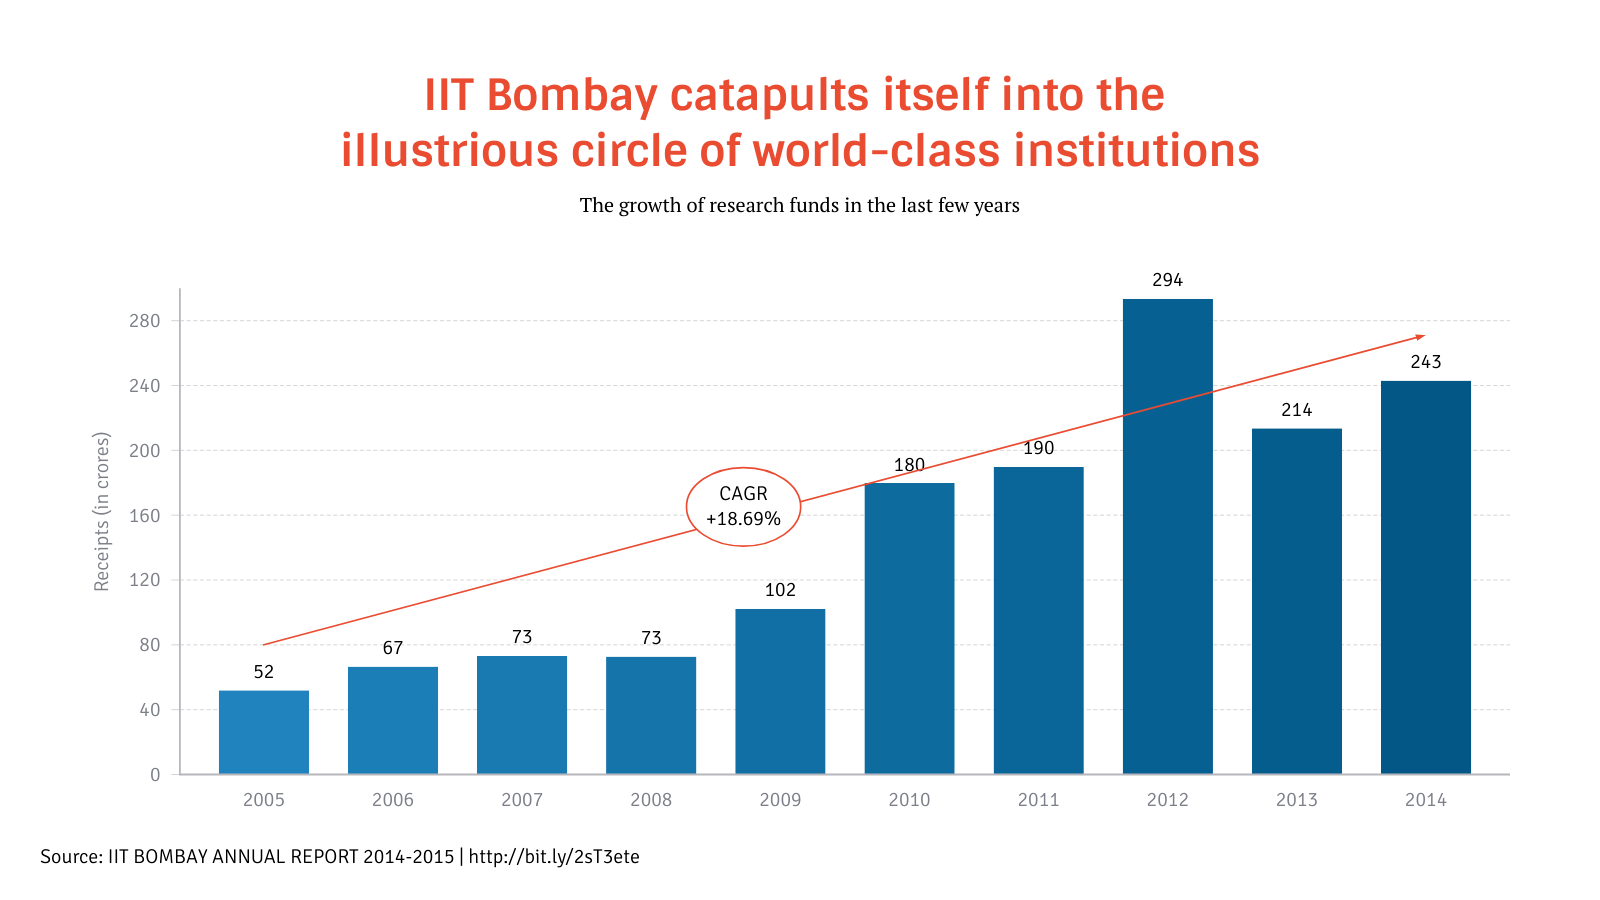 hight resolution of  bar chart example iit bombay catapults itself into the illustrious circle of world class institutions